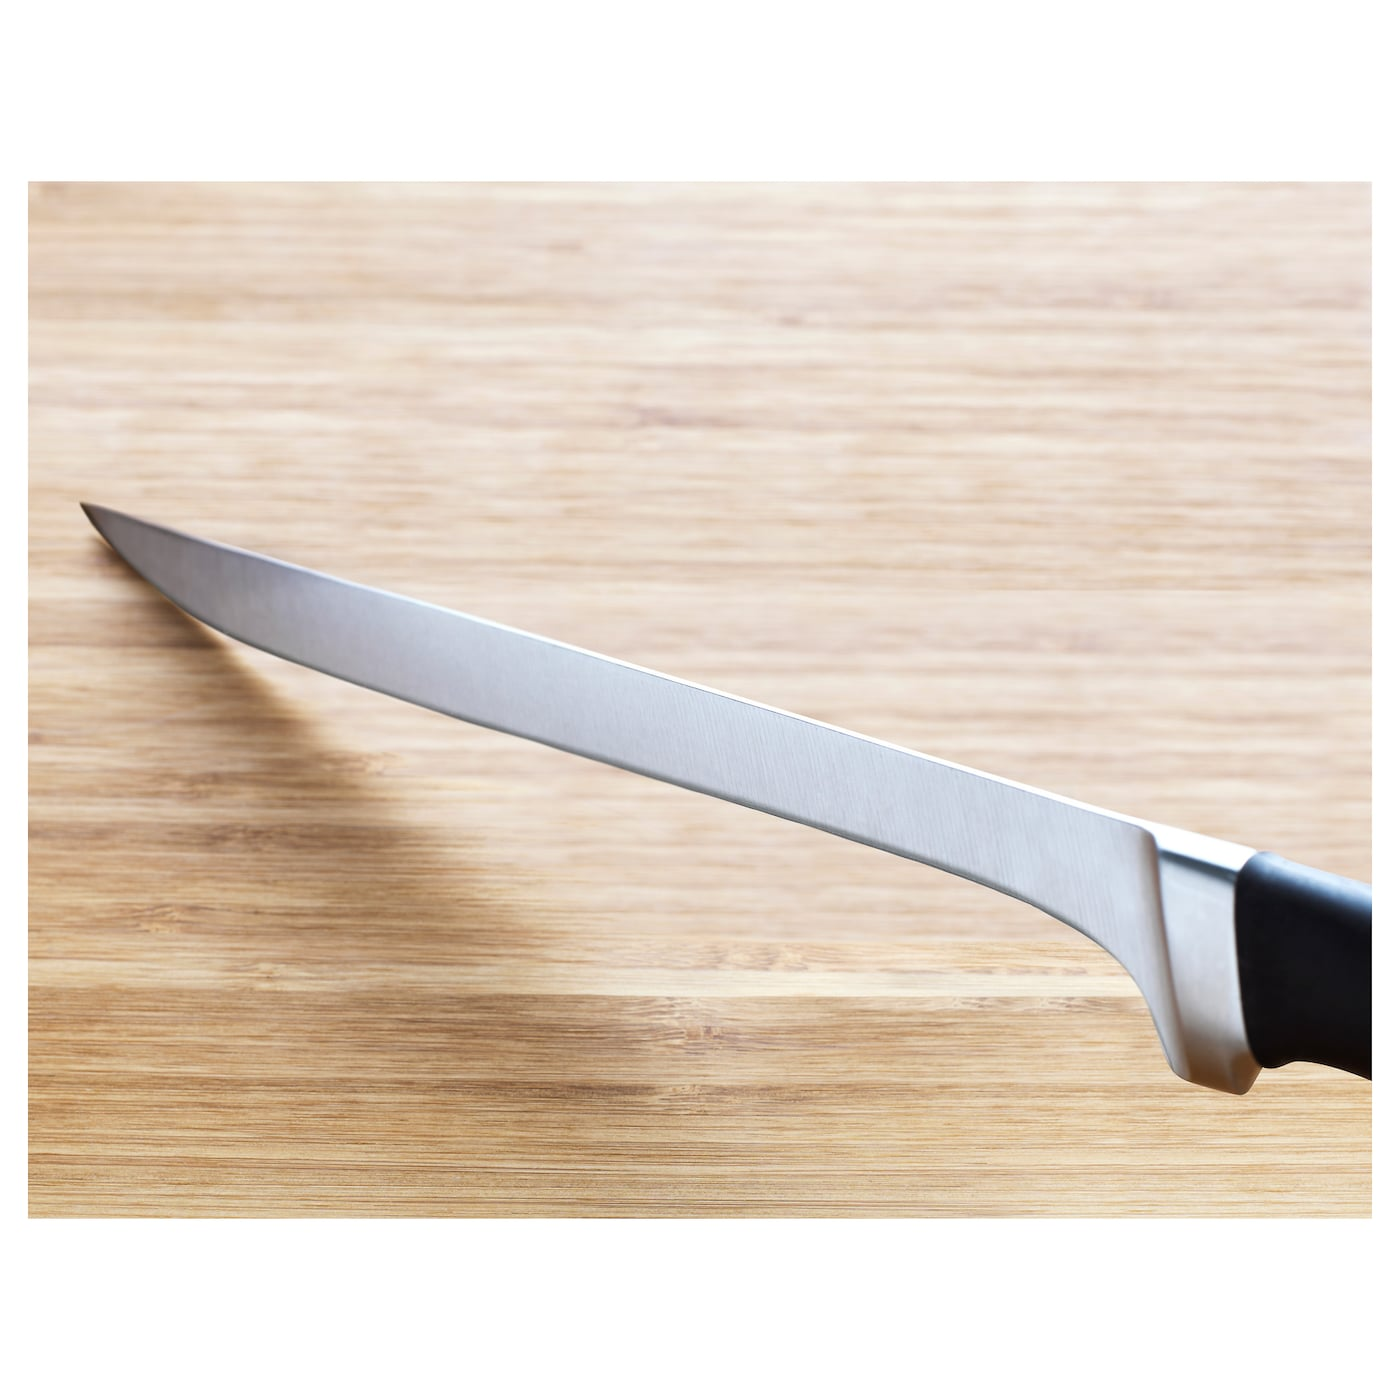 IKEA VÖRDA filleting knife Handle in a design and material providing a firm grip.